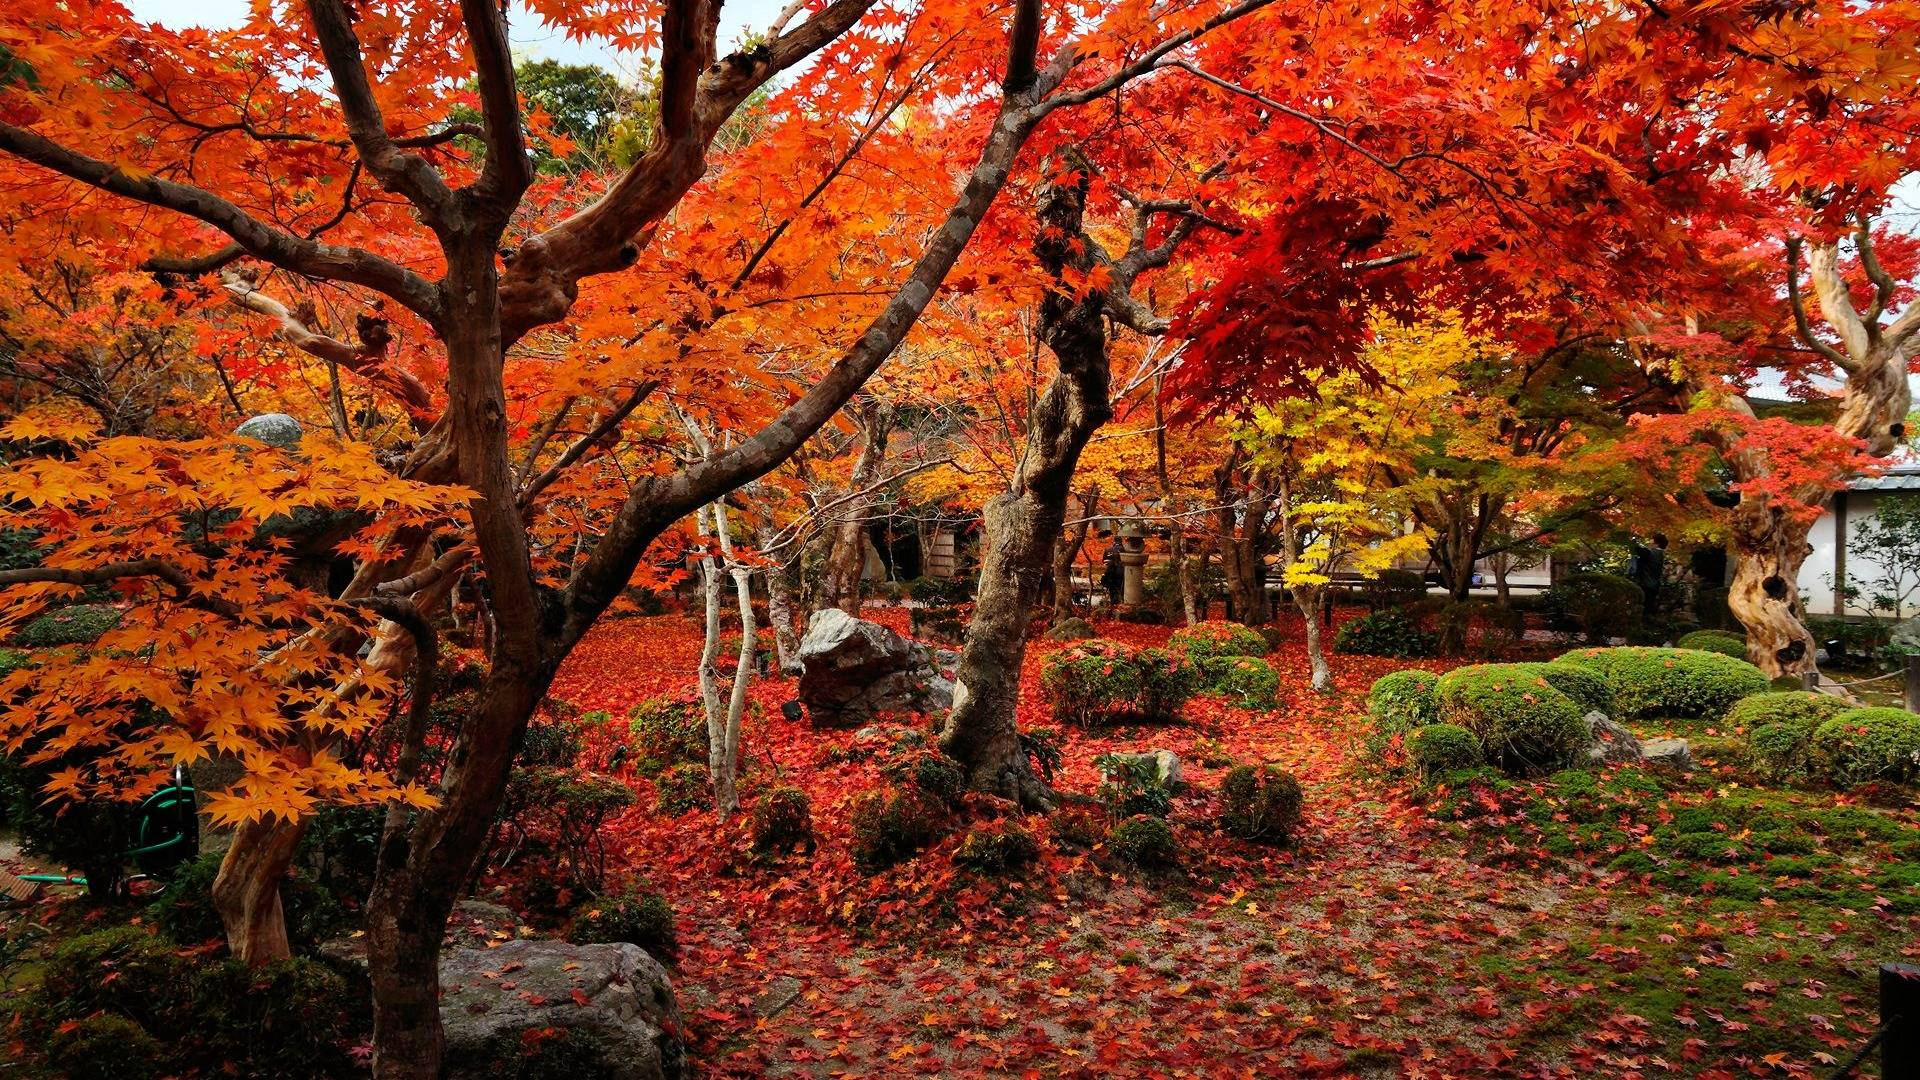 Hd 1080p Fall Wallpaper 79 Images: Autumn Wallpapers 1920x1080